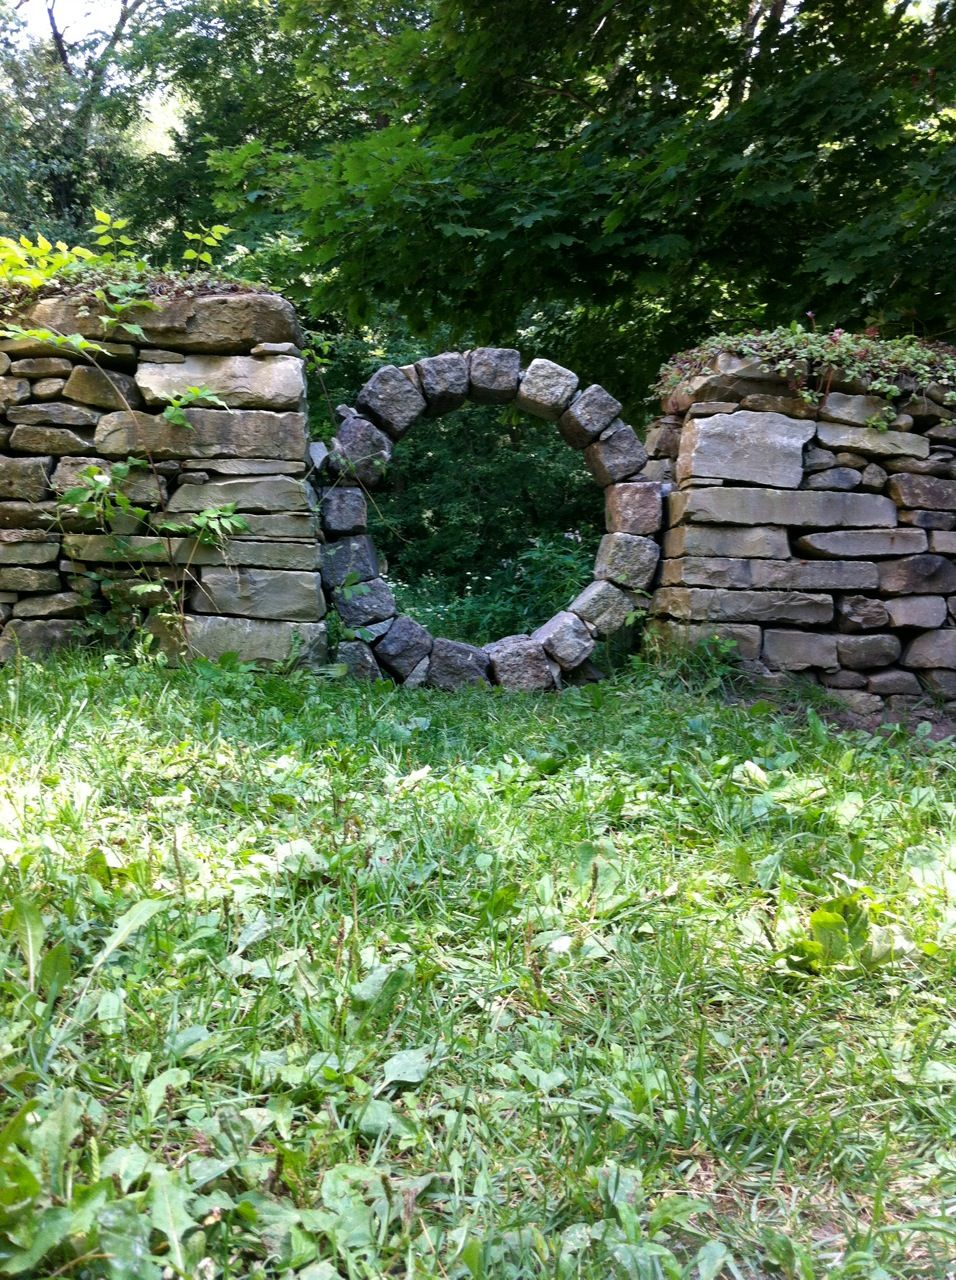 Thinking With My Hands: The Stone Circle